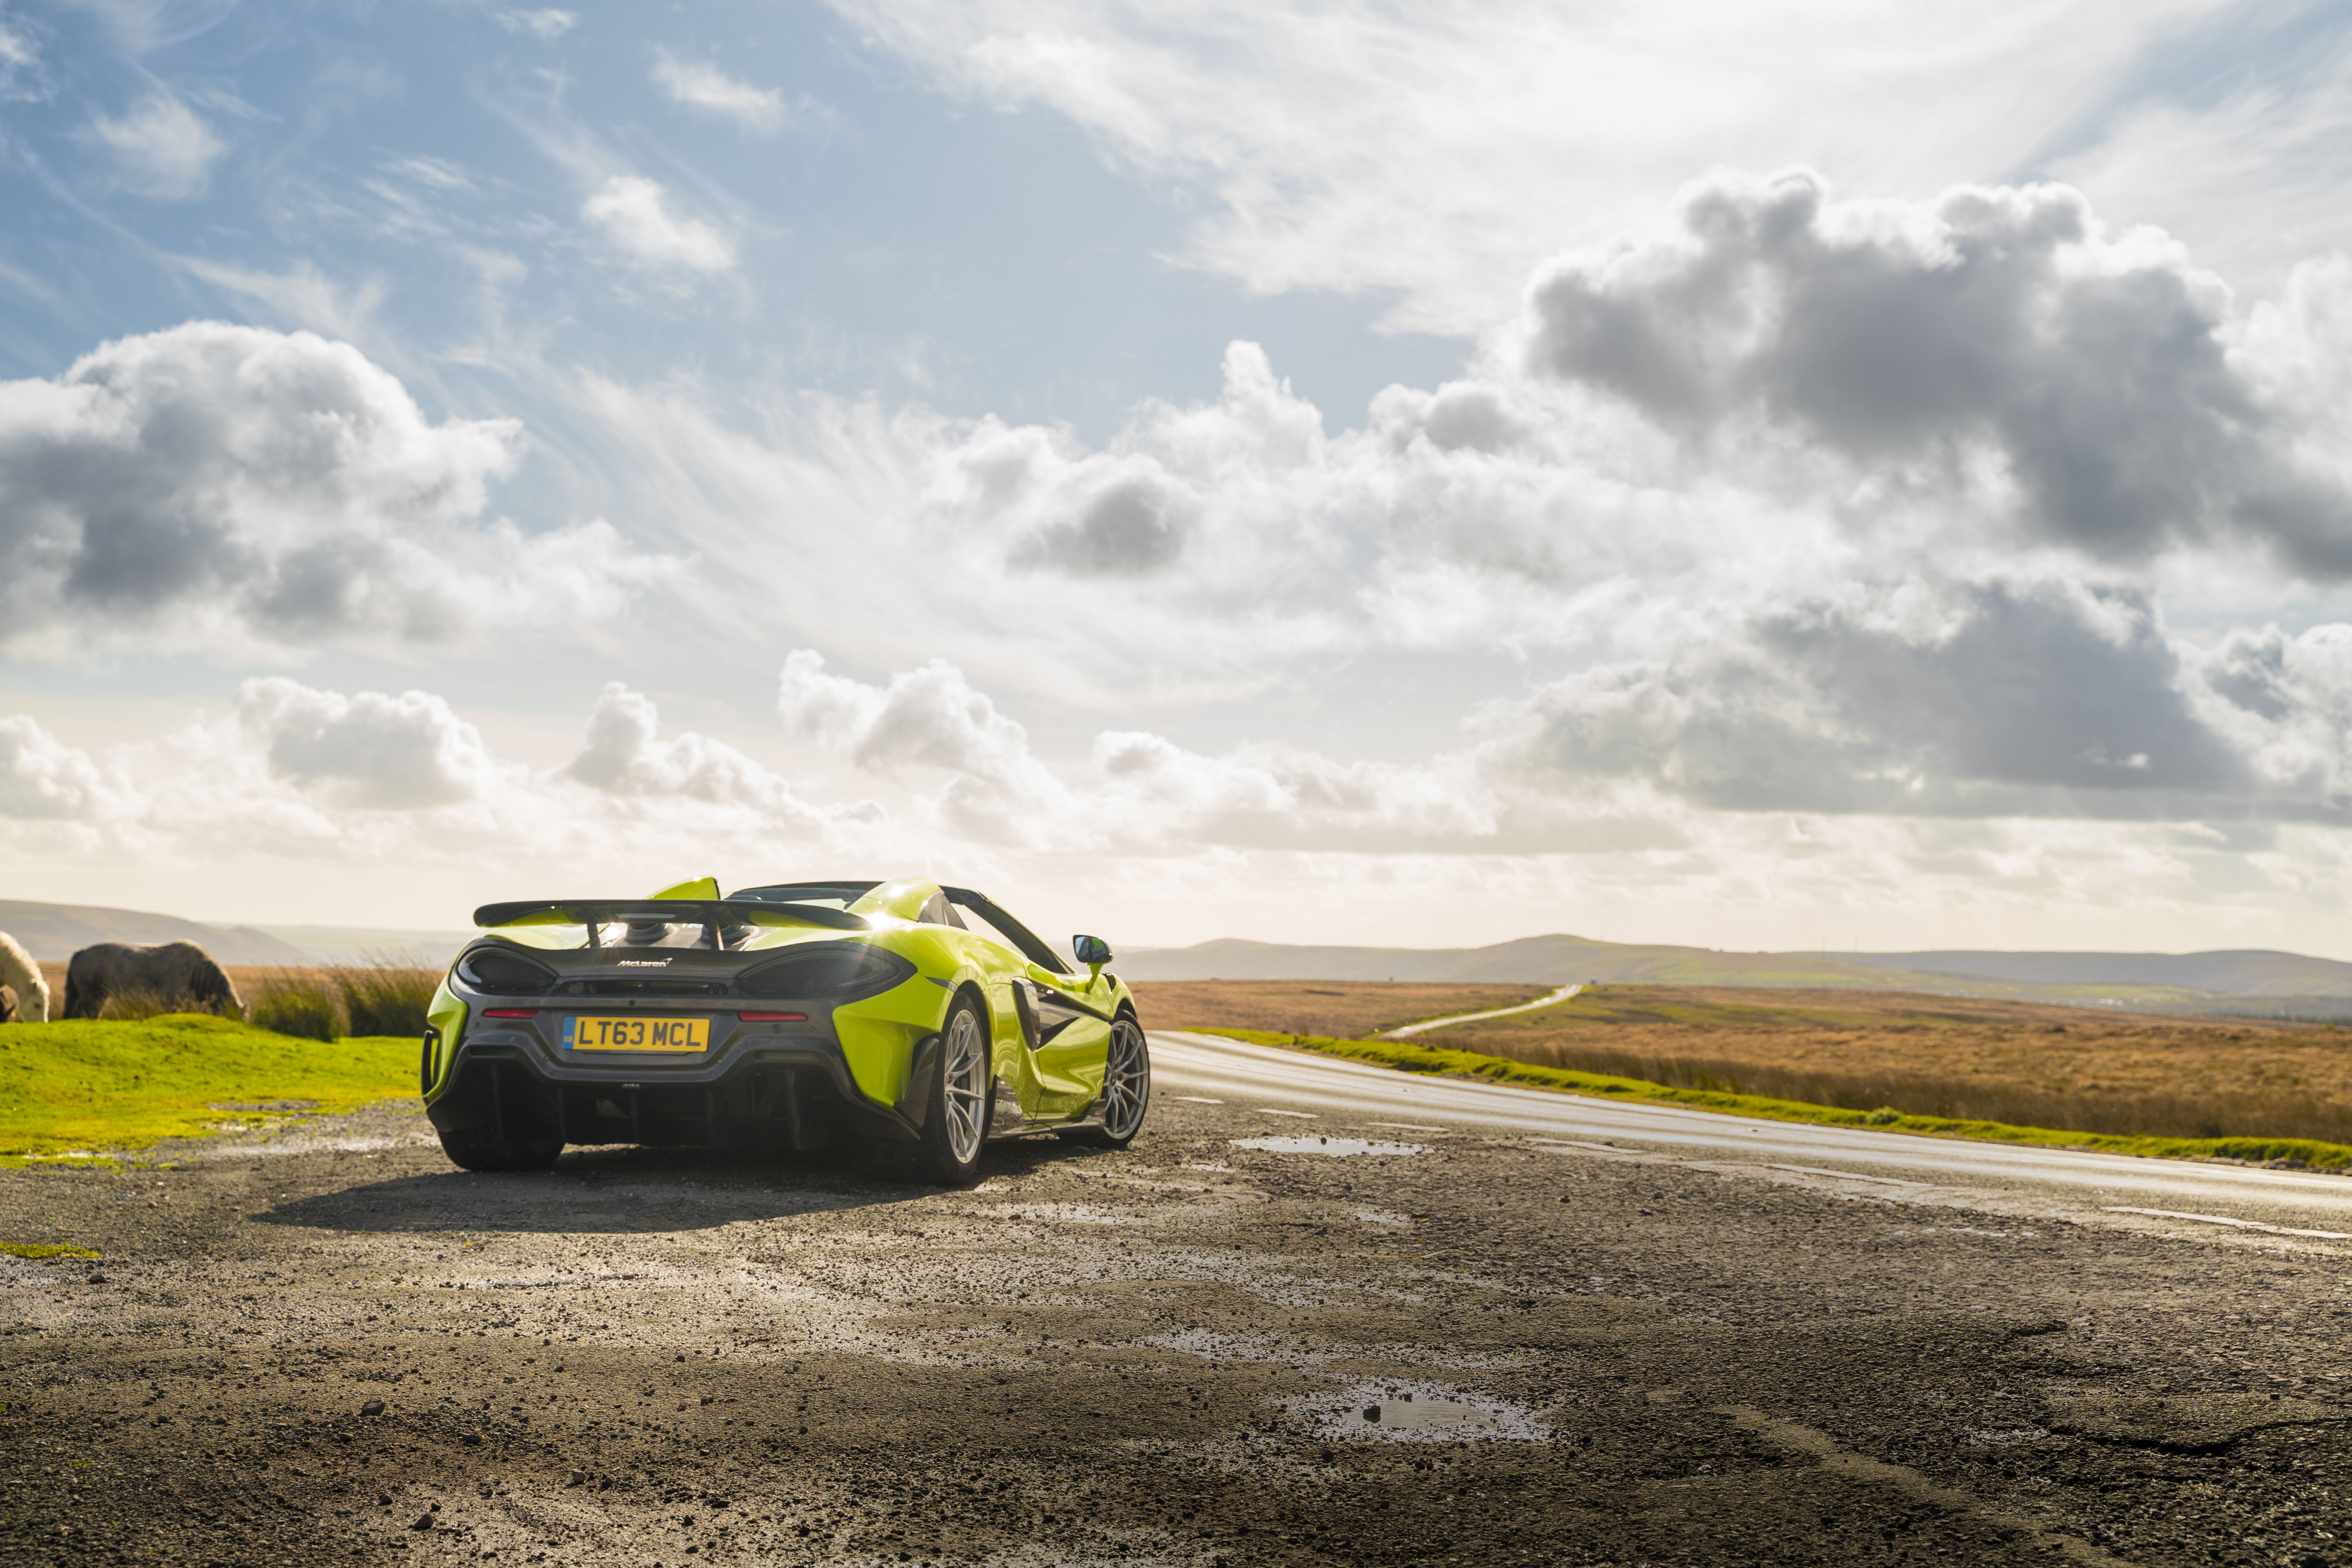 The 600LT's huge wing is hard to miss